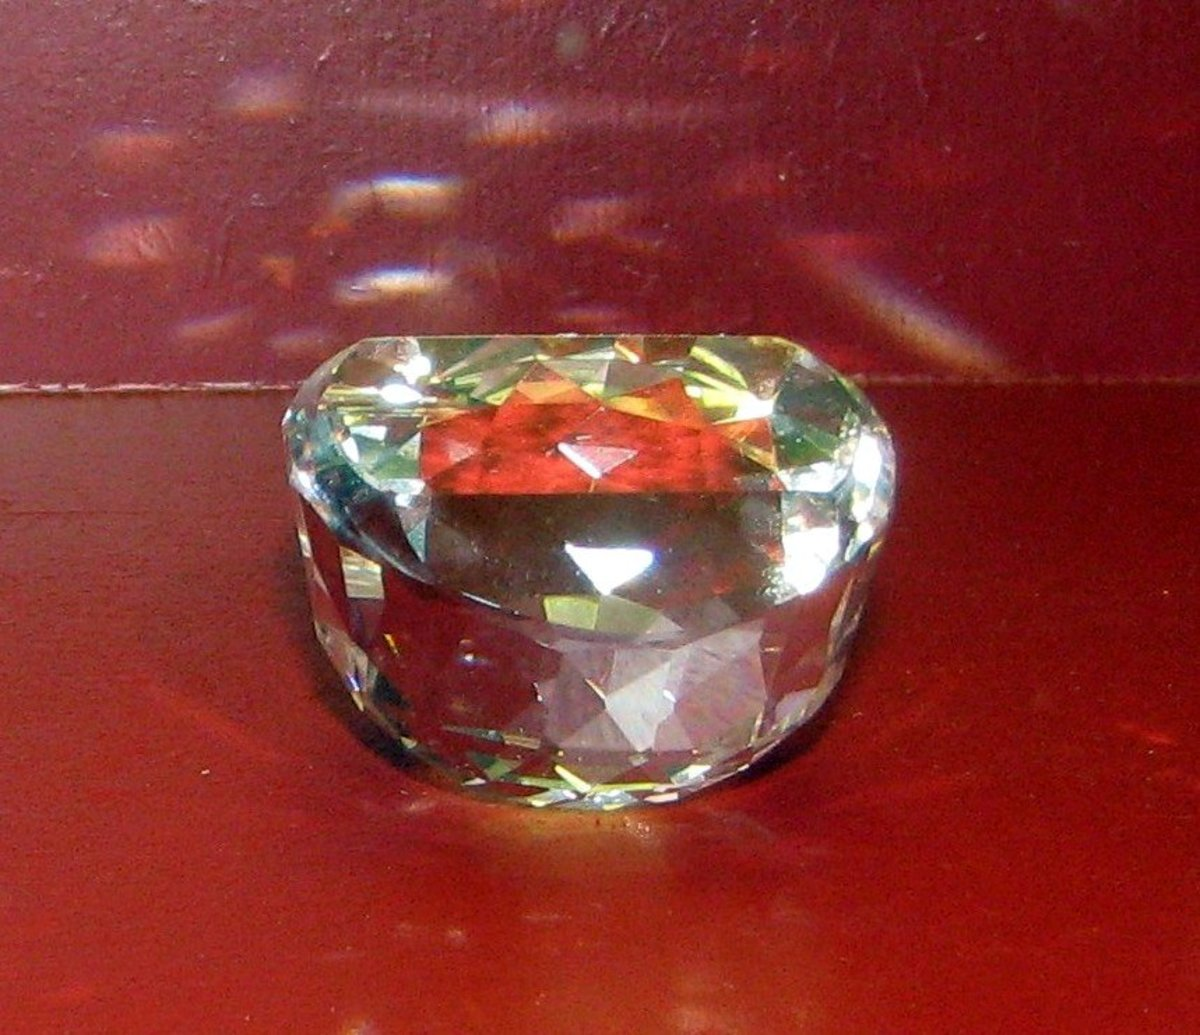 Orlov diamond Shown Upside-Down